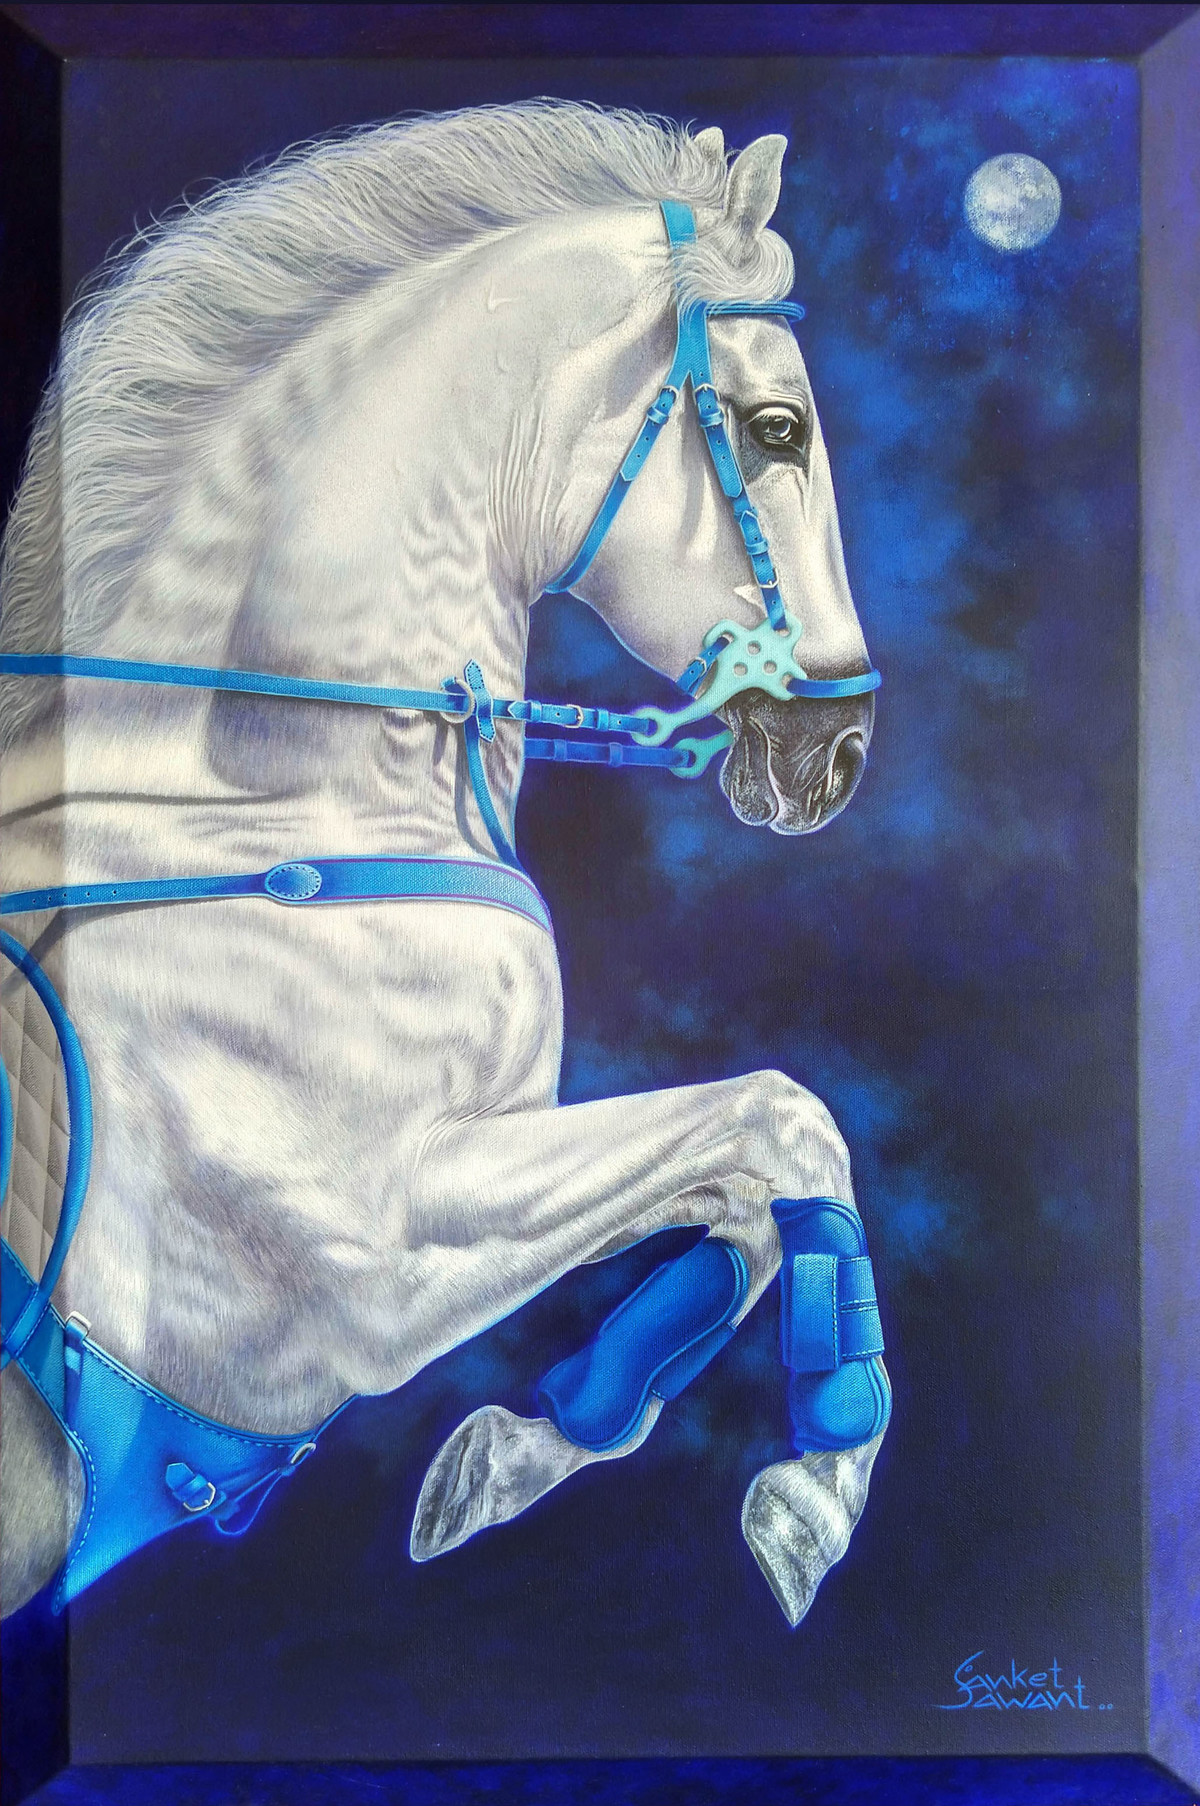 Unstoppable... by sanket sawant, Photorealism Painting, Acrylic on Canvas, Celeste color